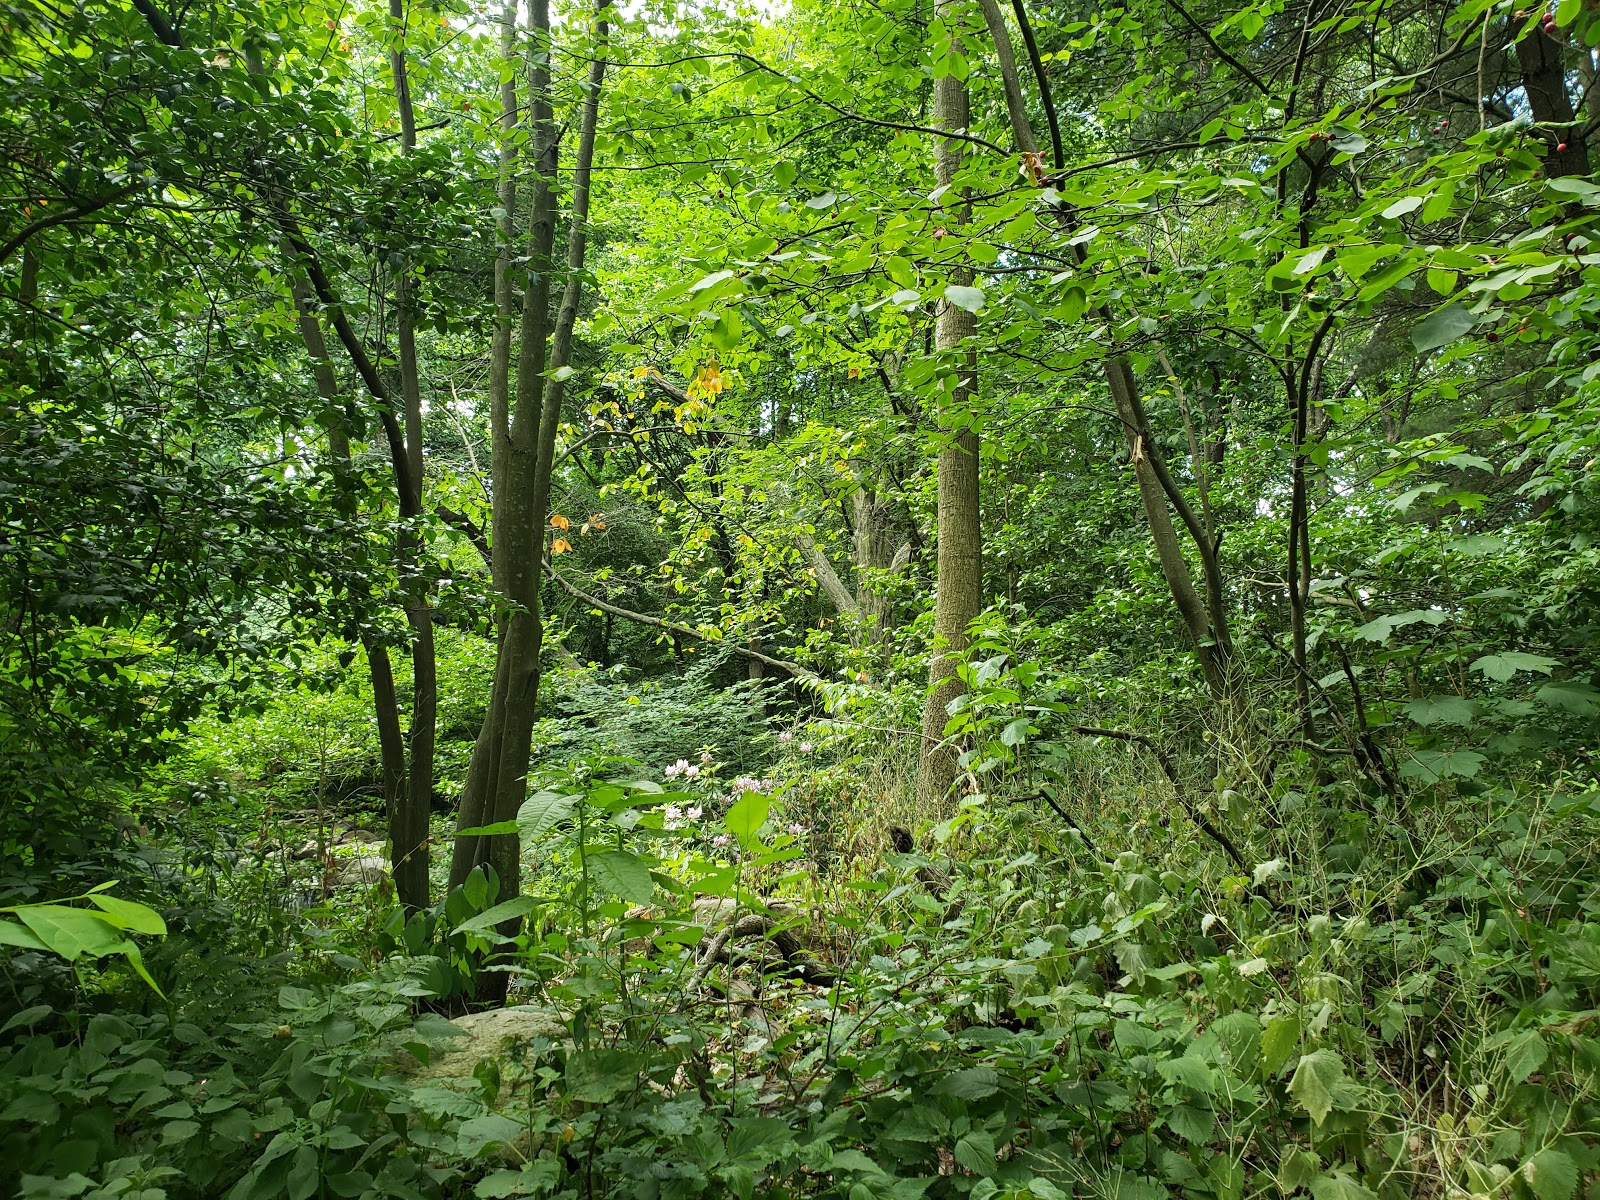 large undergrowth with trees